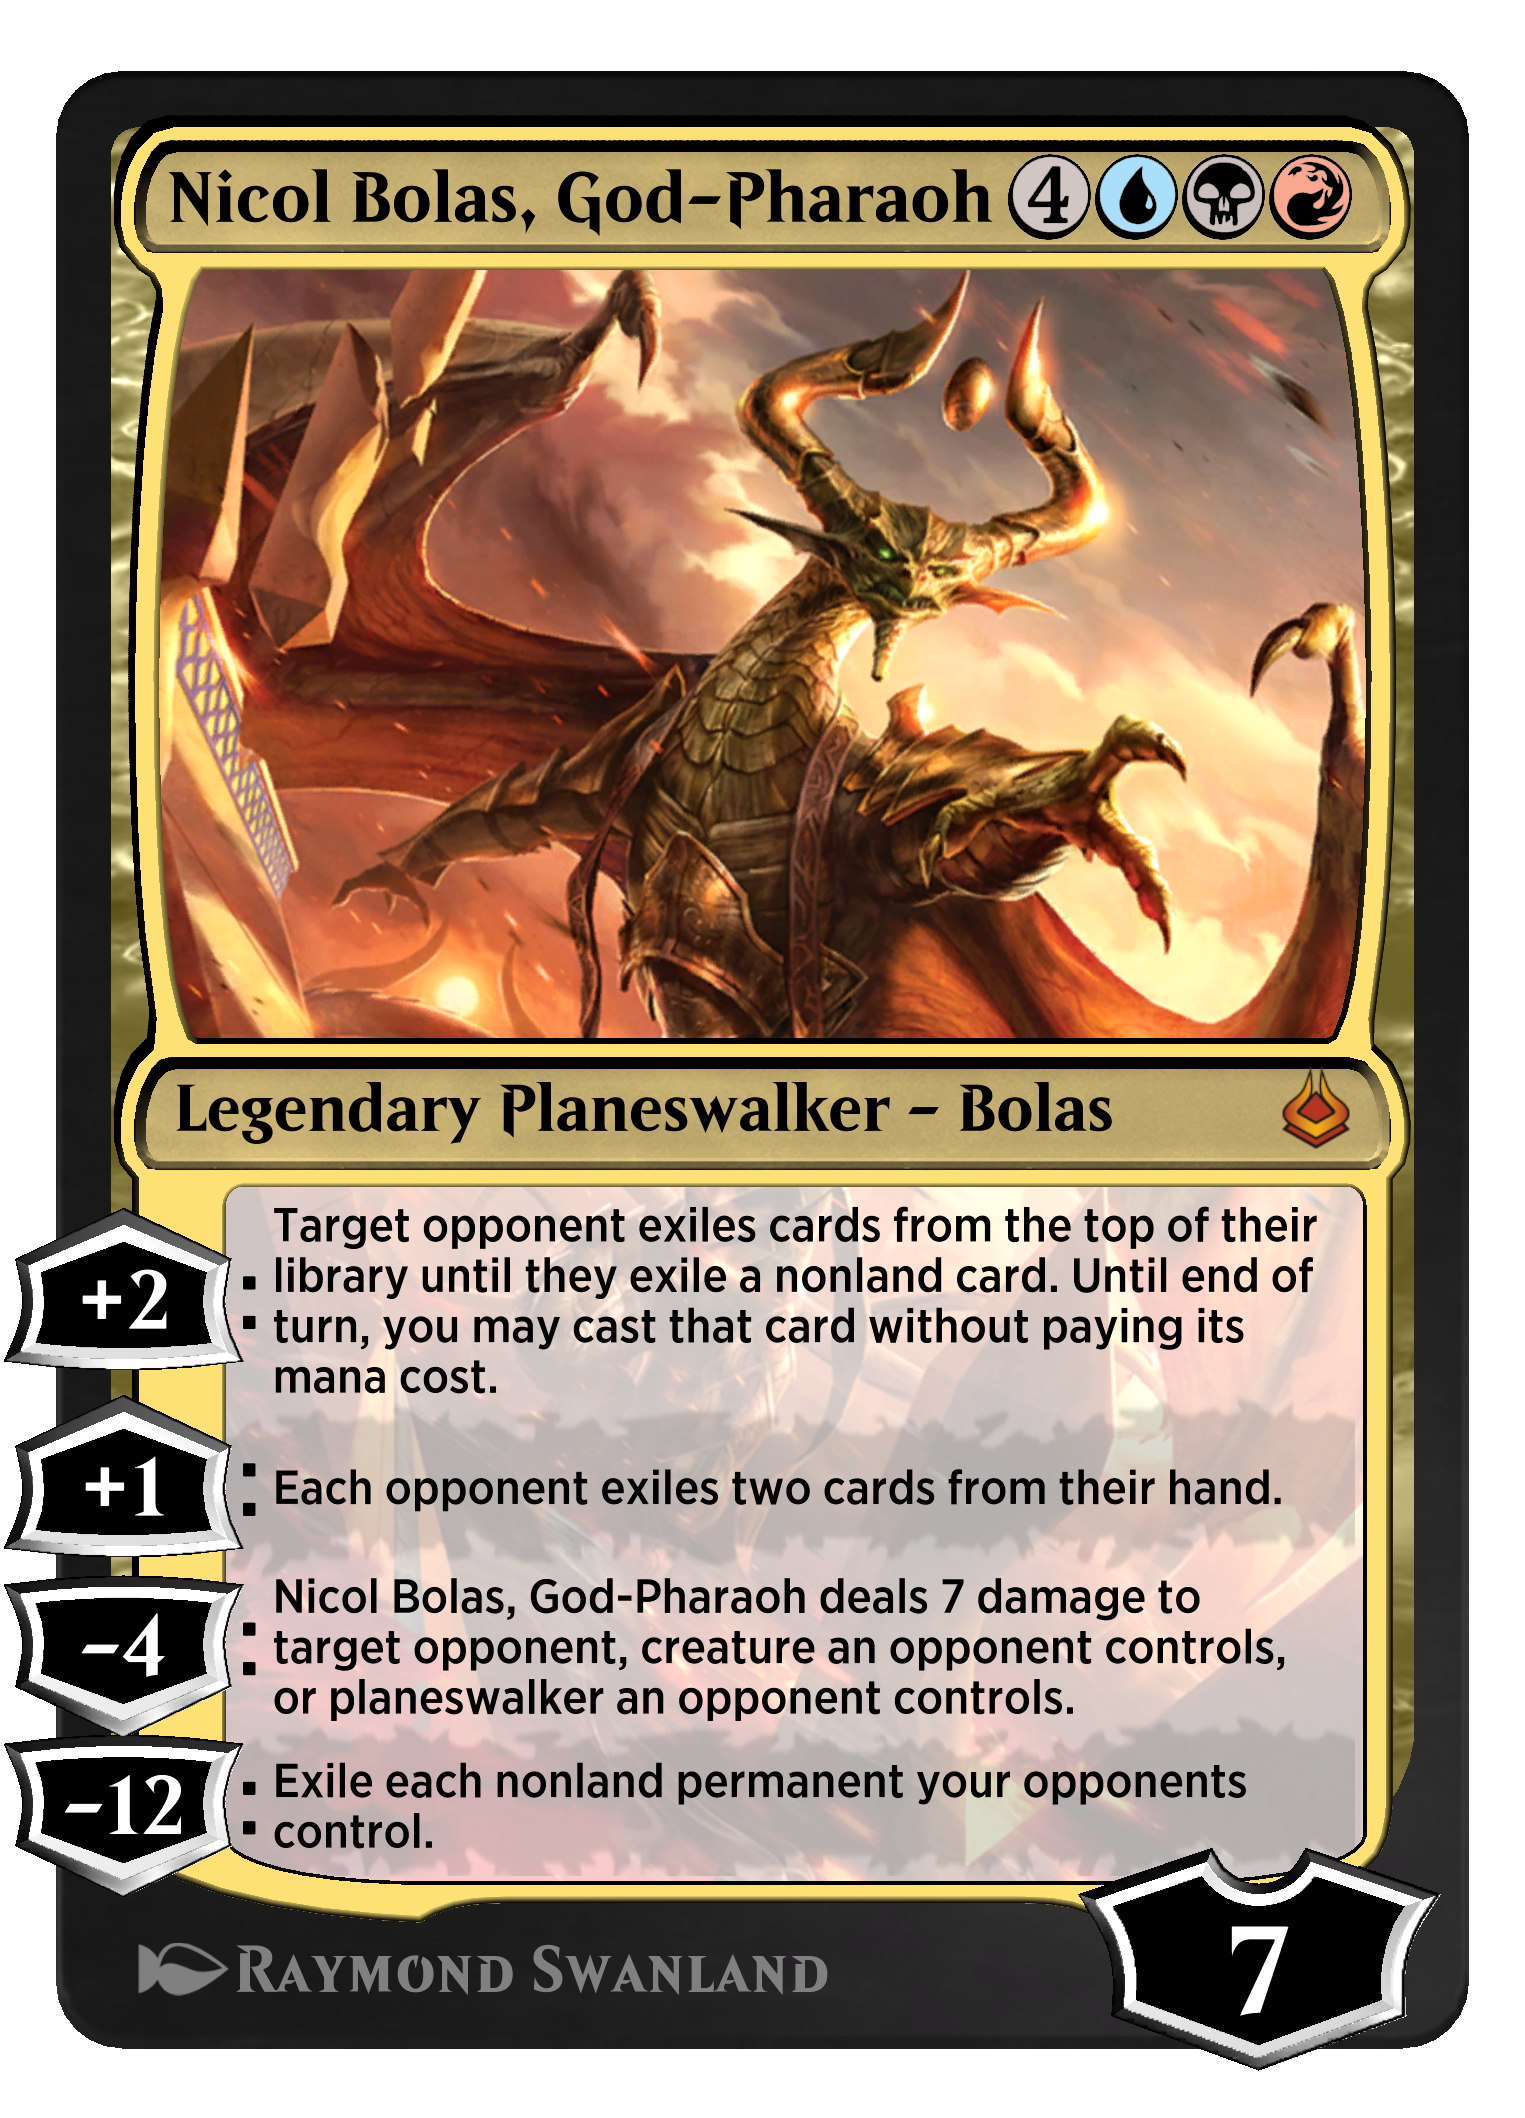 Nicol Bolas, God-Pharaoh